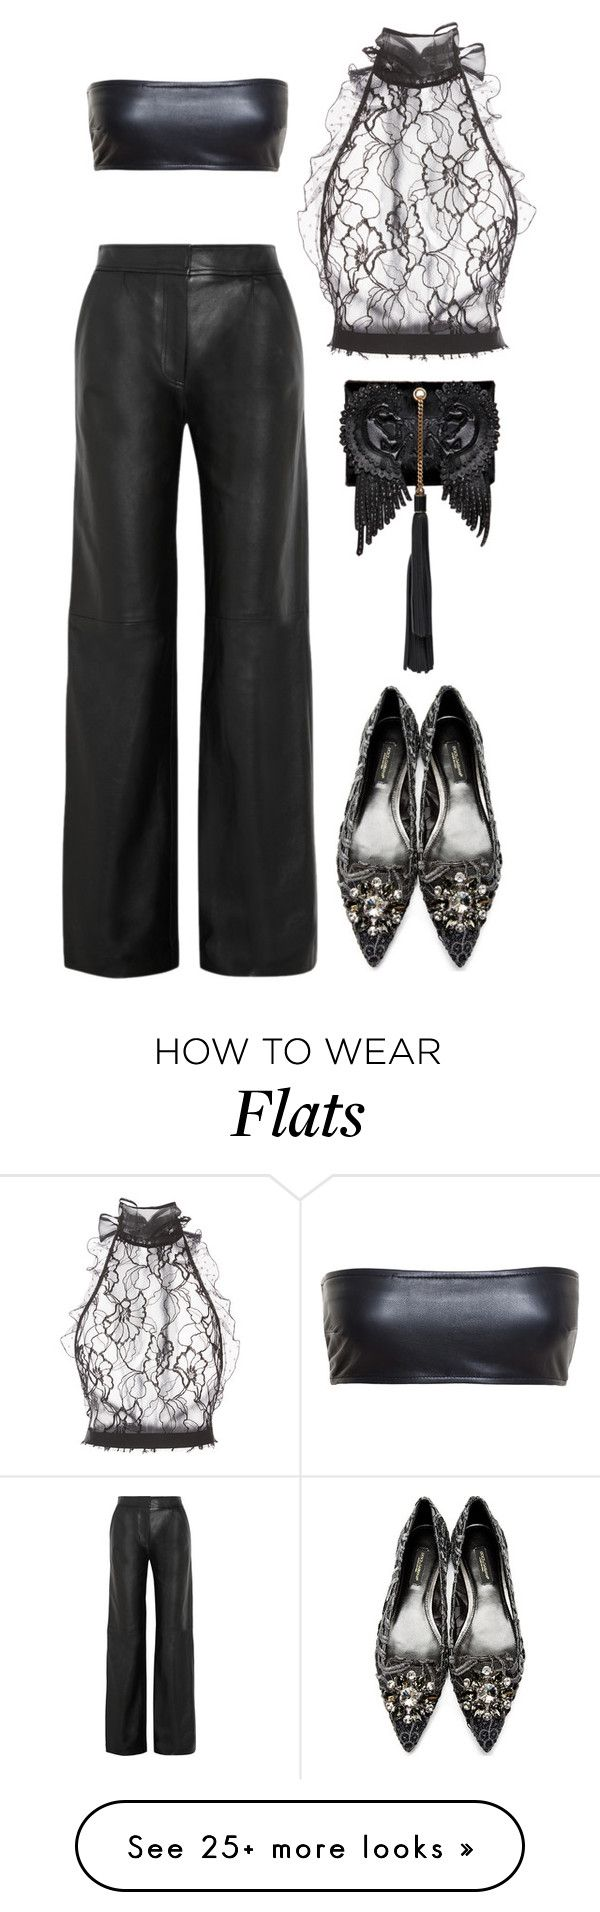 """Anywhere Else"" by silhouetteoflight on Polyvore featuring Oscar de la Renta, ADAM, Love Leather, Dolce&Gabbana and Roberto Cavalli"